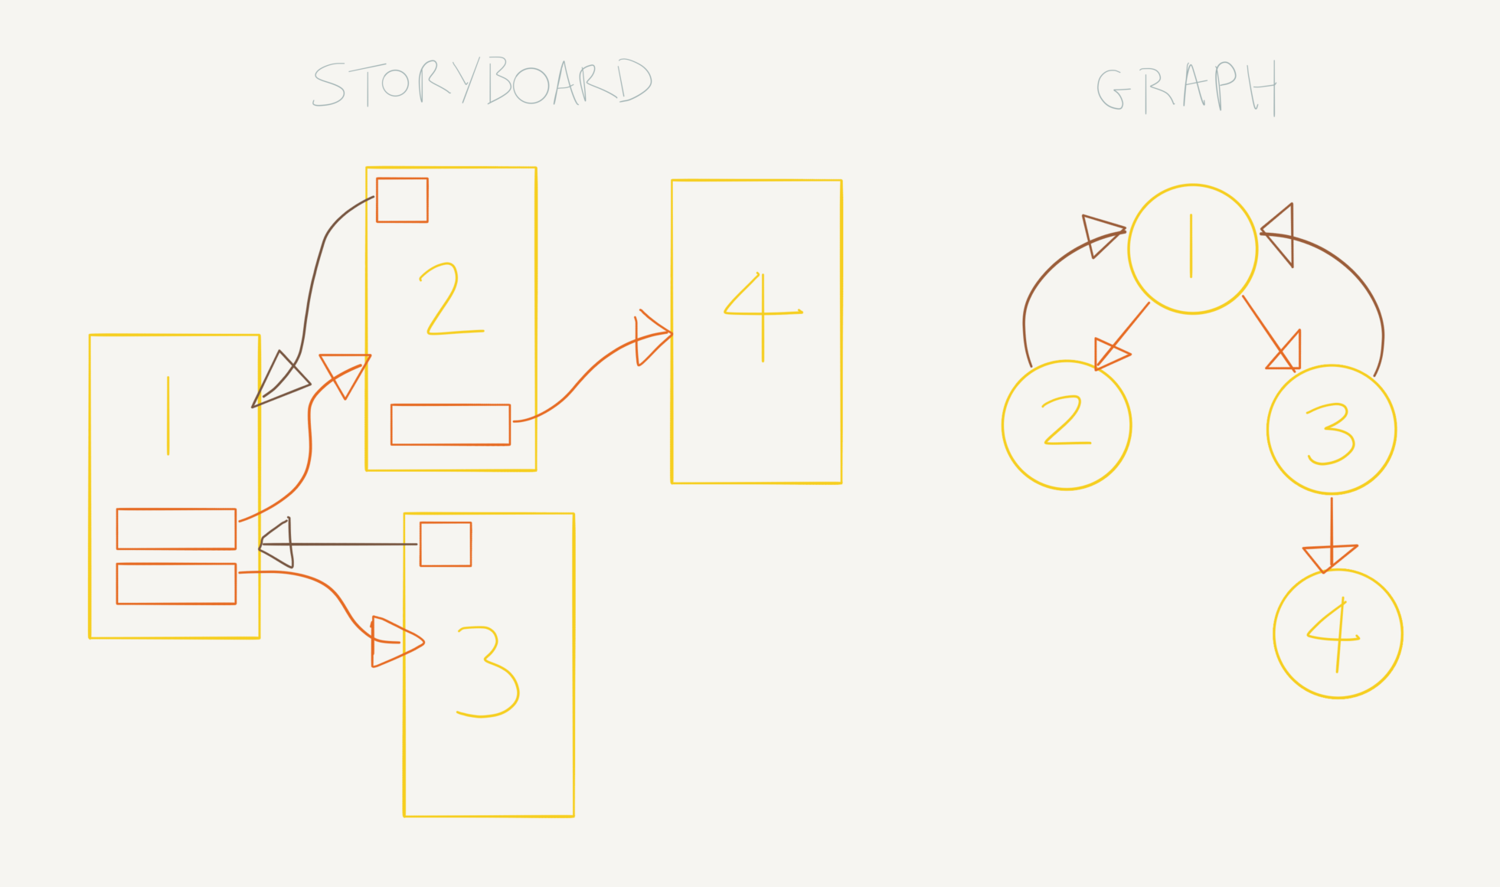 Creating a graph data structure with support for polymorphism in